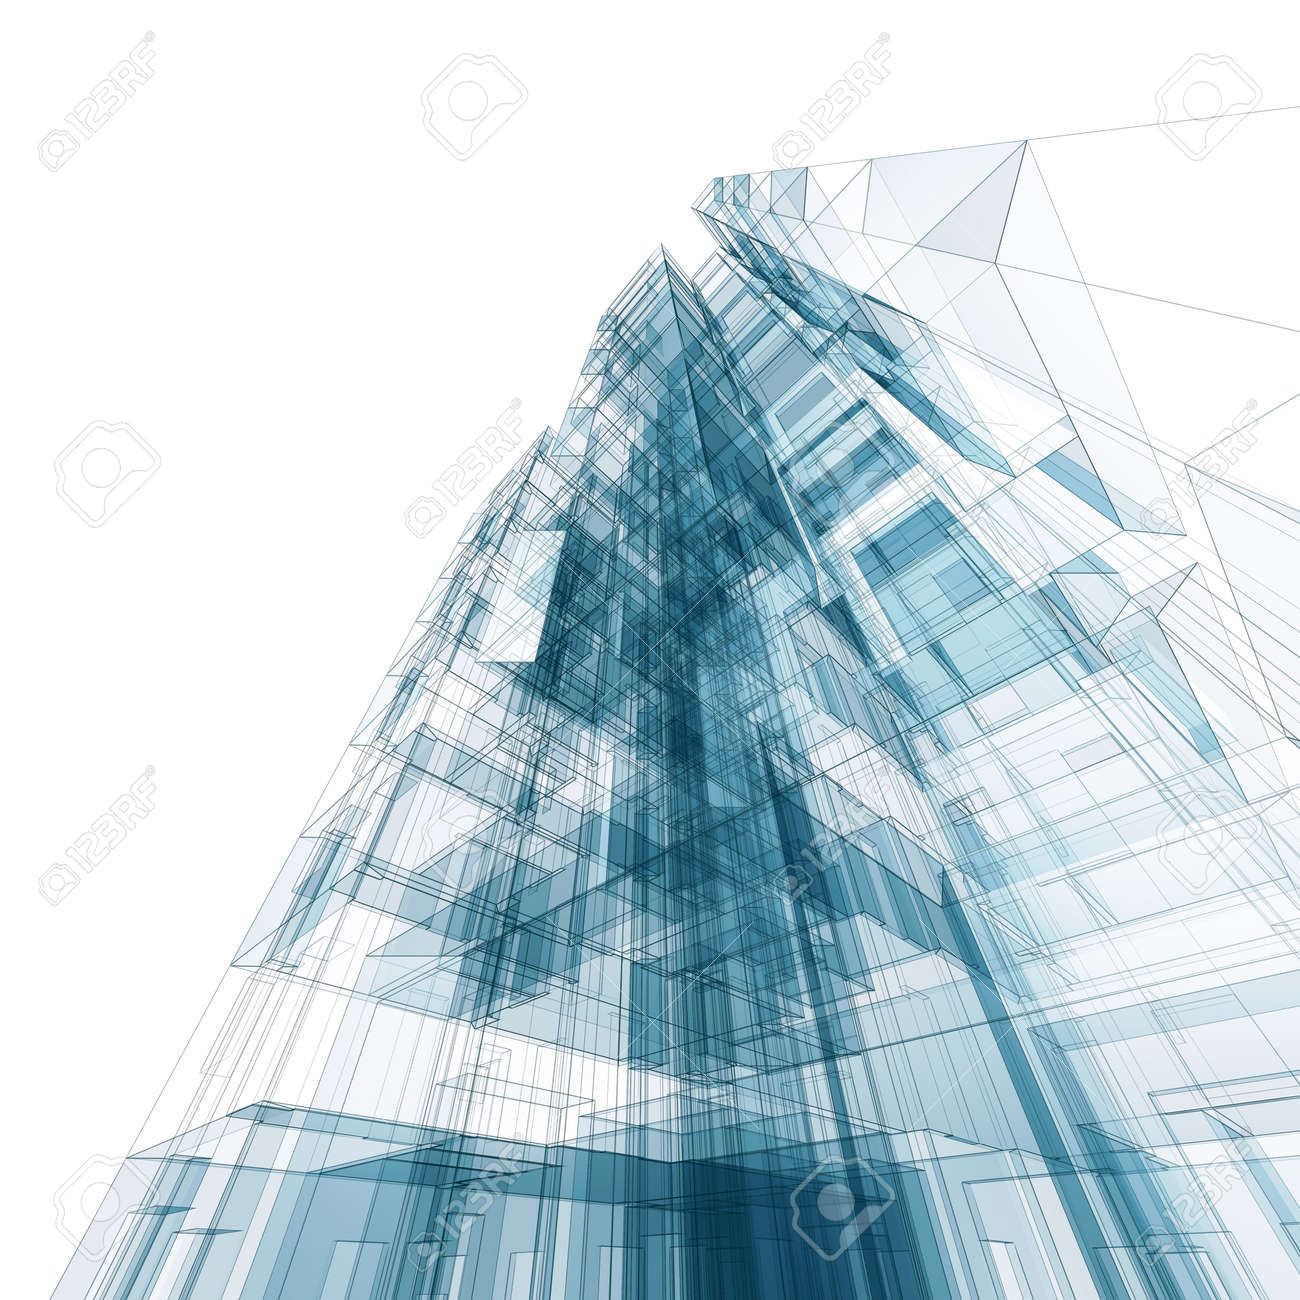 bstract Building rchitecture Design nd Model My Own Stock Photo ... - ^